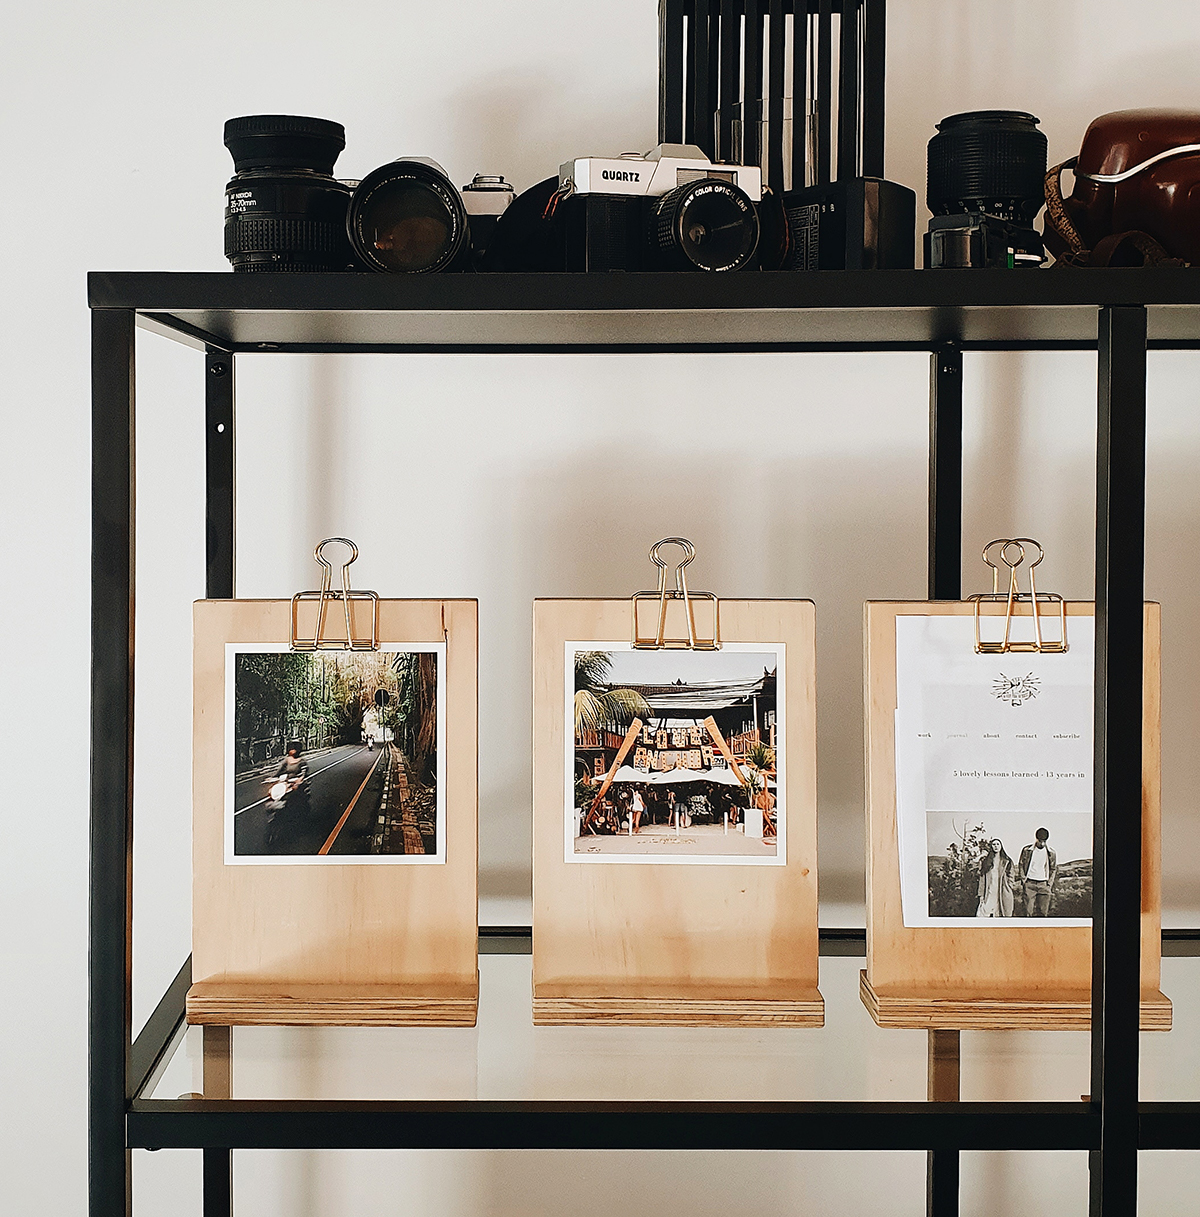 Unique wooden photo holders lined on a shelf and holding square prints